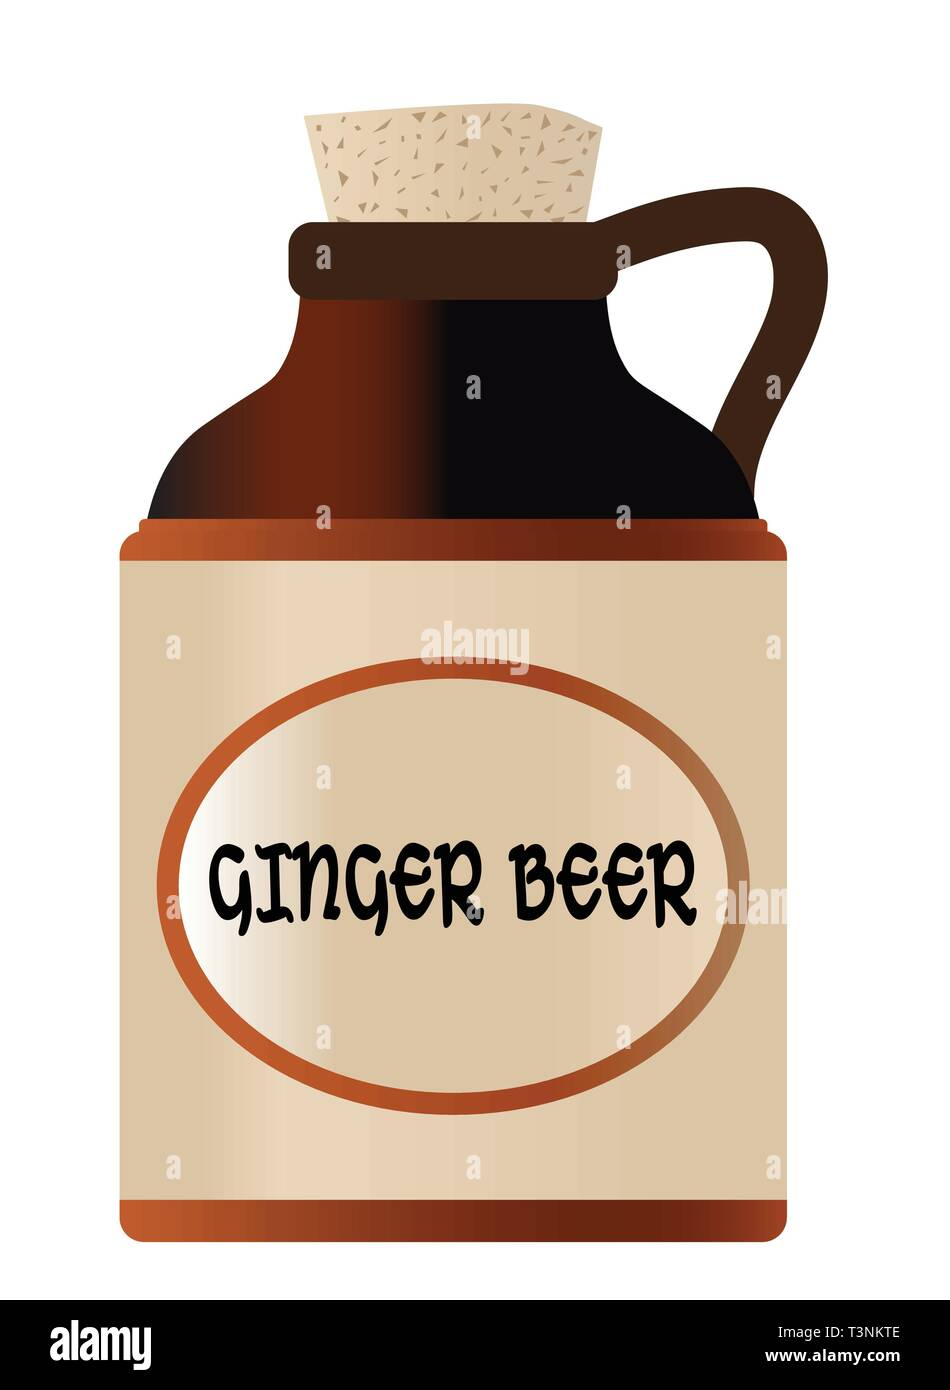 Isolated ginger beer bottle with cork and the legend moonshine - Stock Image